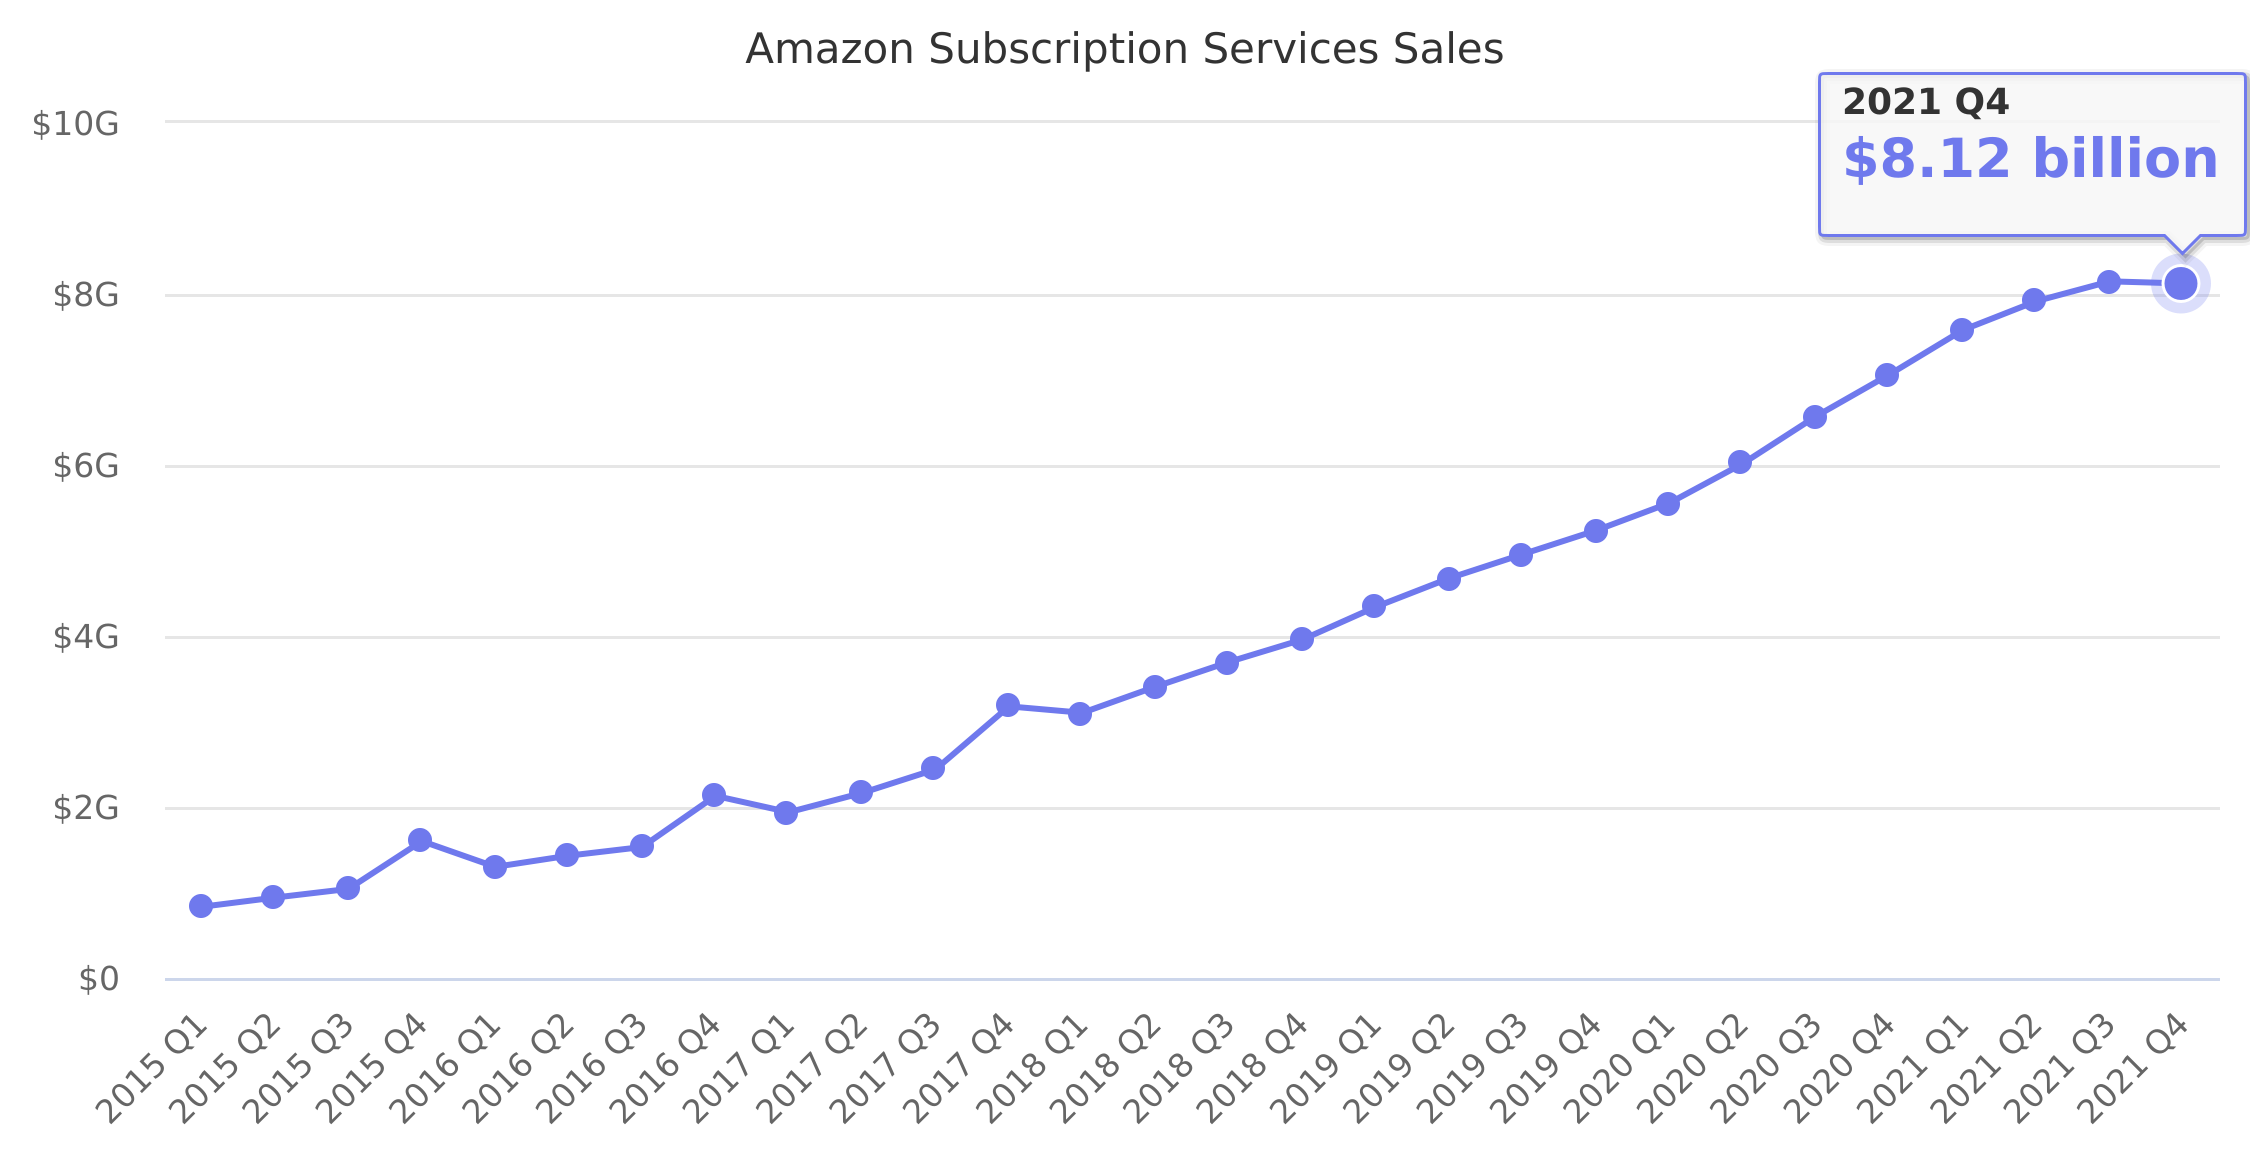 Amazon Subscription Services Sales 2015-2018